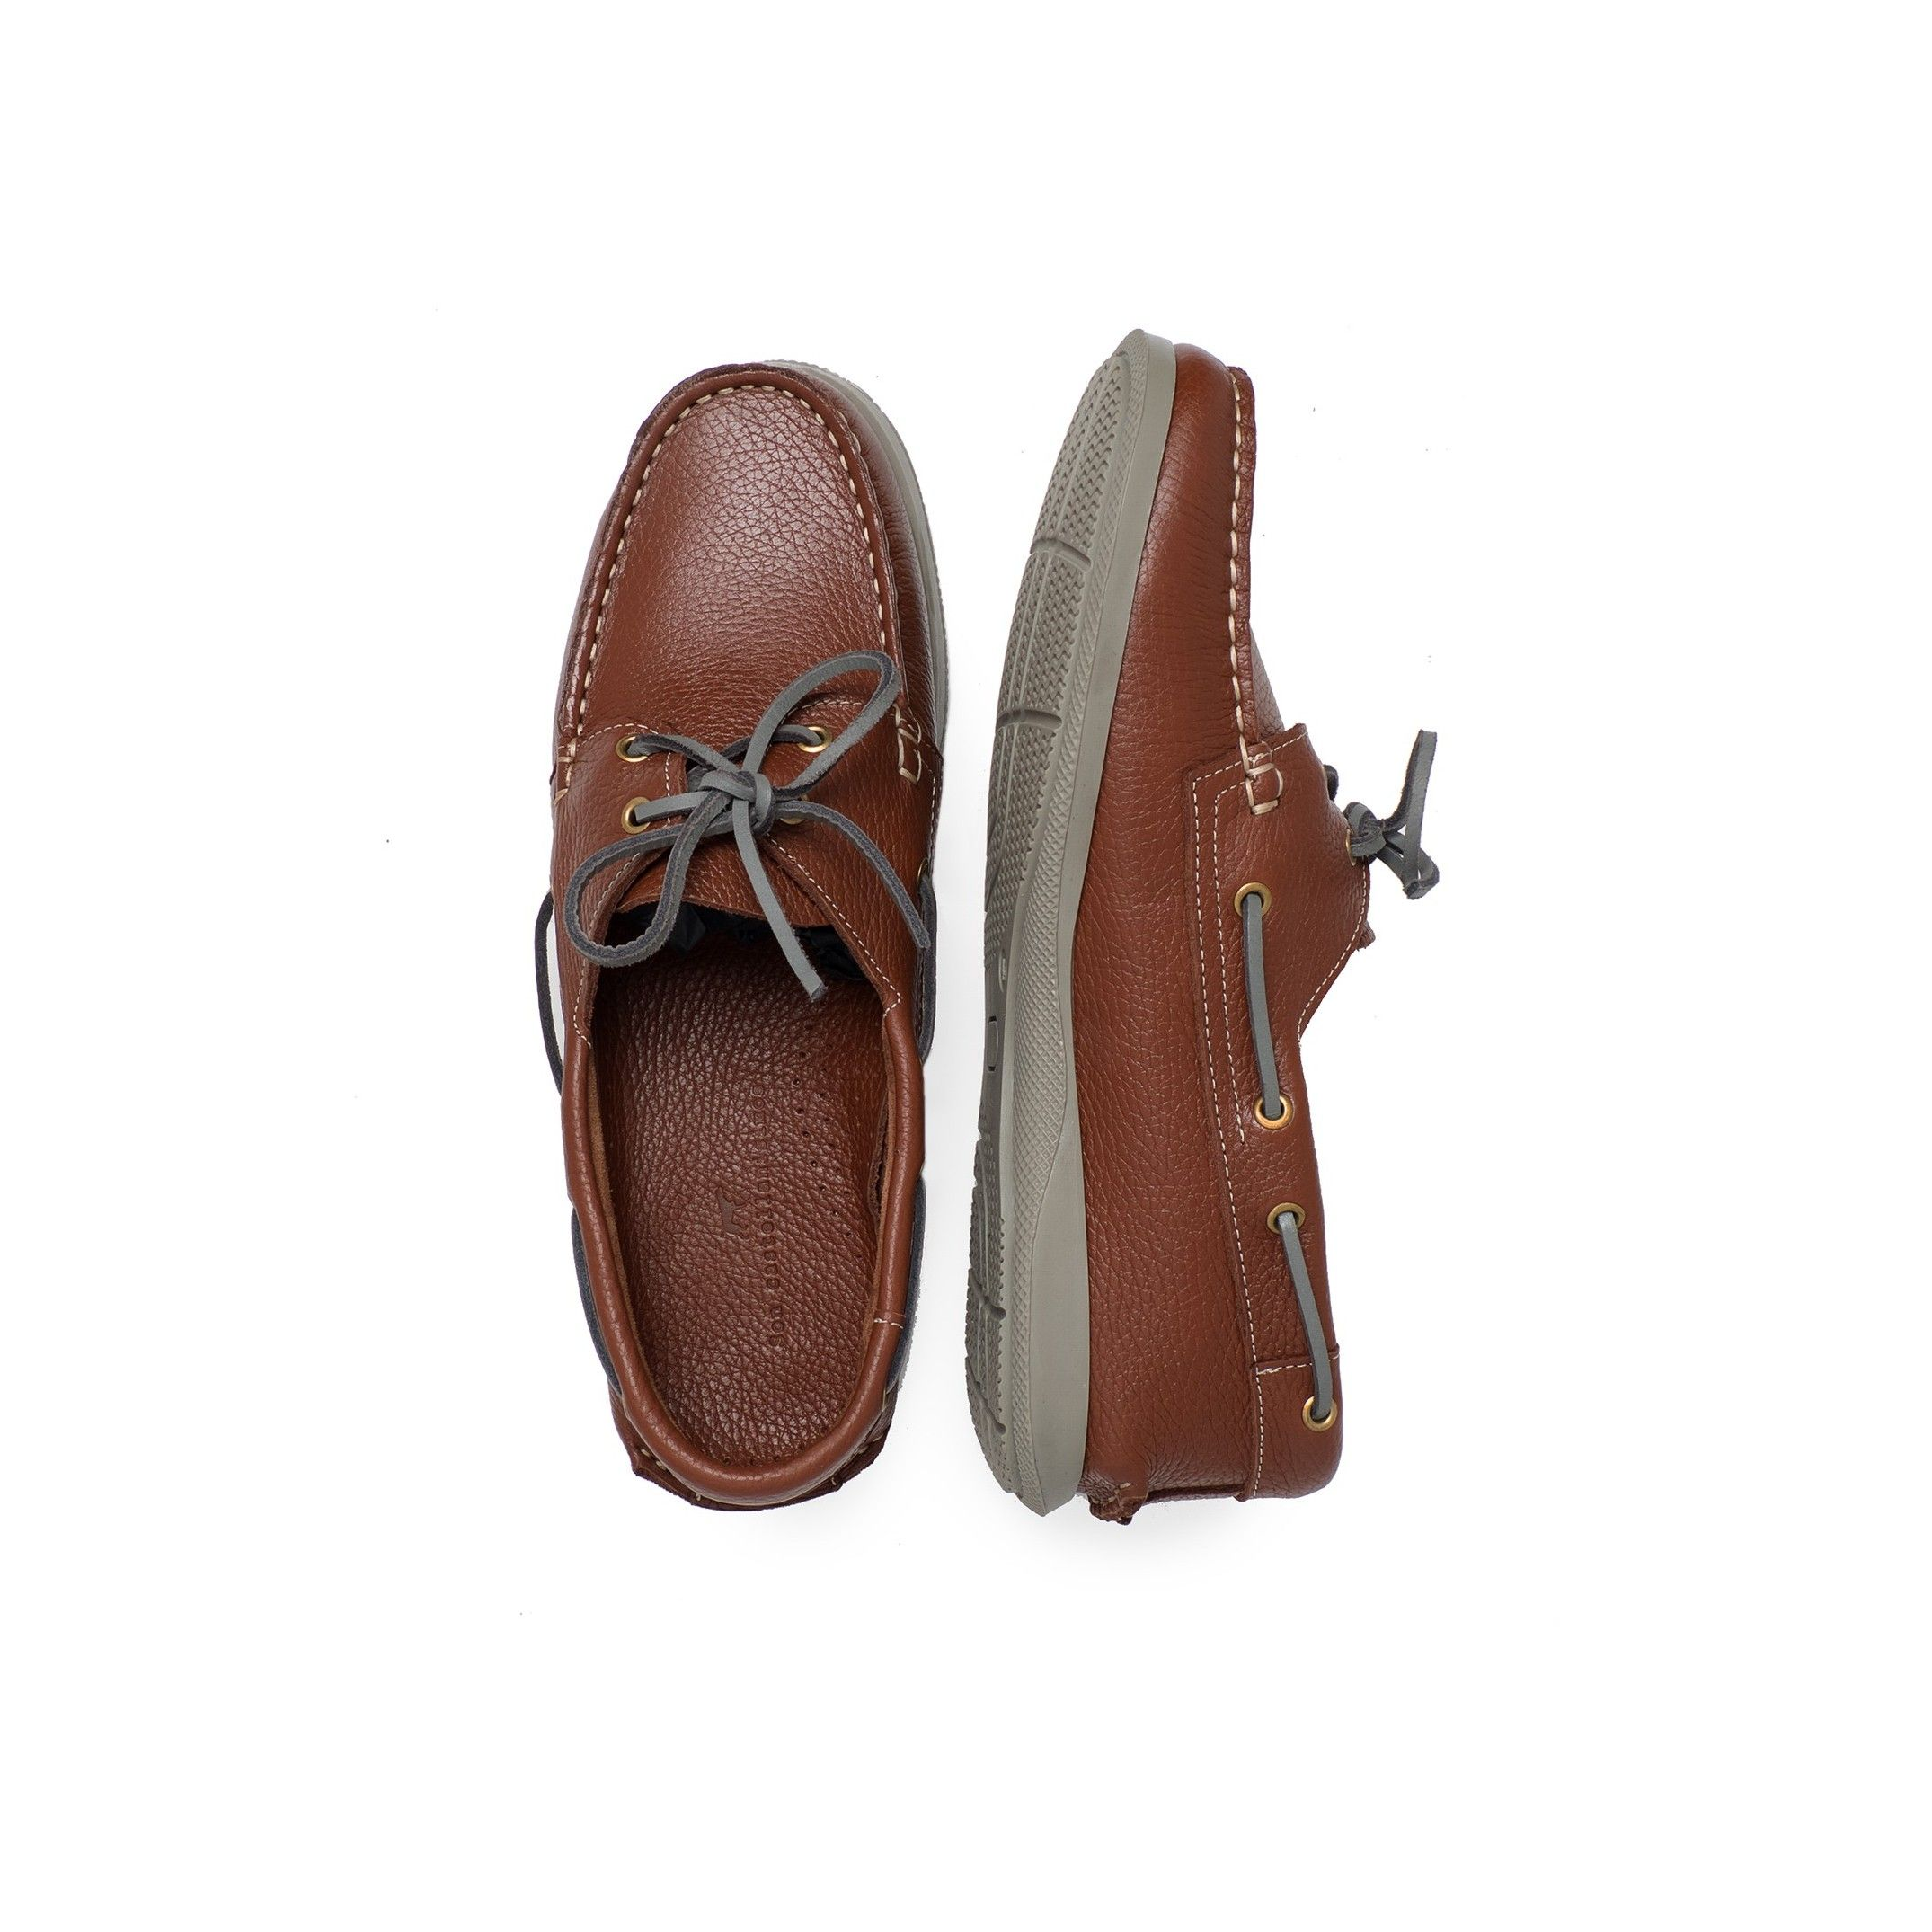 Men's Leather Boat Shoes in Brown